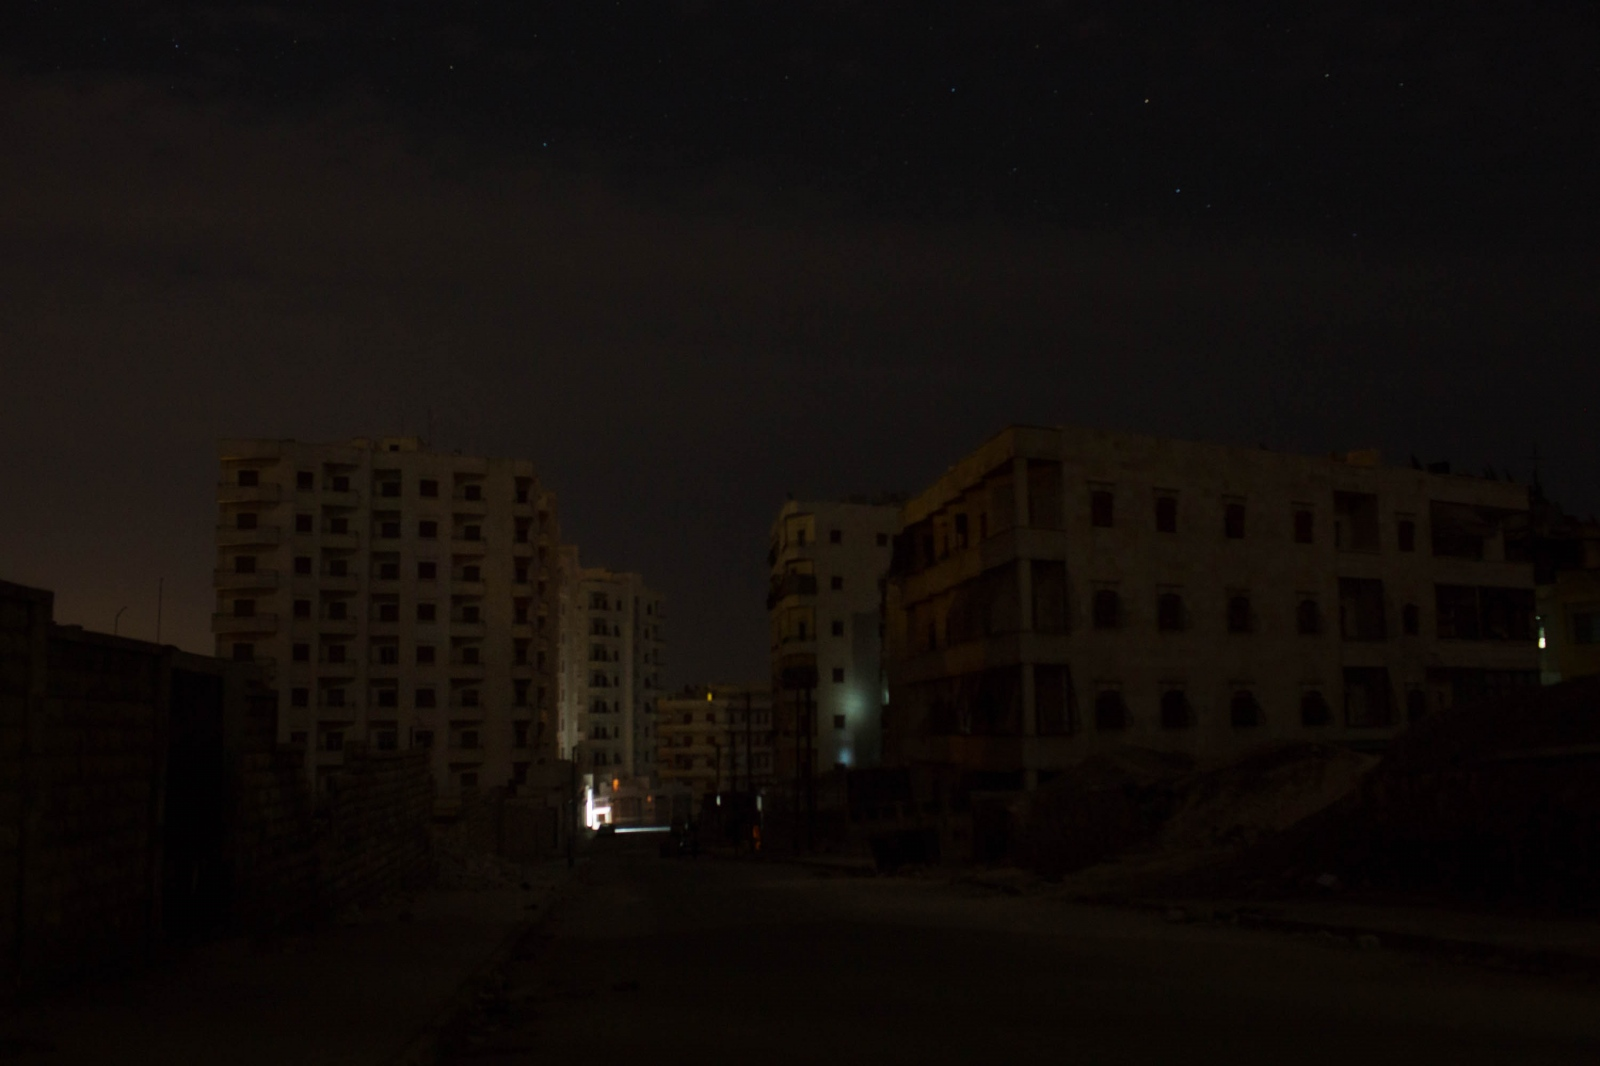 A view of apartment blocks without electricity in a neighborhood of Aleppo, Syria. 2013. The streets of Aleppo -- a city of approximately 3 million before the war -- seem desolate at night. Opposition-held areas change from mostly bustling middle class neighborhoods, to a series of empty boulevards and silent buildings. Look hard enough and the destruction of the city becomes apparent in the darkness. Climb high enough and the disparity between government and opposition-held neighborhoods become apparent: the government side is gleaming with lights from buildings and street lamps. A military hospital there, a government building there. A main square there. The opposition side has paid dearly for their revolt: death, destruction, and rarely any electricity. Only recently have the lights come back on in some neighborhoods where the locals were able to patch their own electricity together. The aim of these photos was to convey the accessible parts of the city when night fell. Electricity had been out to most of the opposition areas wedged in an uneasy patchwork between government and rebel neighborhoods for nearly seven months by the time these photos were taken. The indiscriminate shelling from the ground and sky, the invisible snipers--the physical war-- along with the psychological war or this conflict have caused immeasurable damage and has exacted a heavy toll on one of Syria's most important, historic cities and its population. Between 13-15,000 people are estimated to have died in Aleppo (civilians and combatants combined) and countless homes and shops have been lost. Yet the city still endures, often quietly.